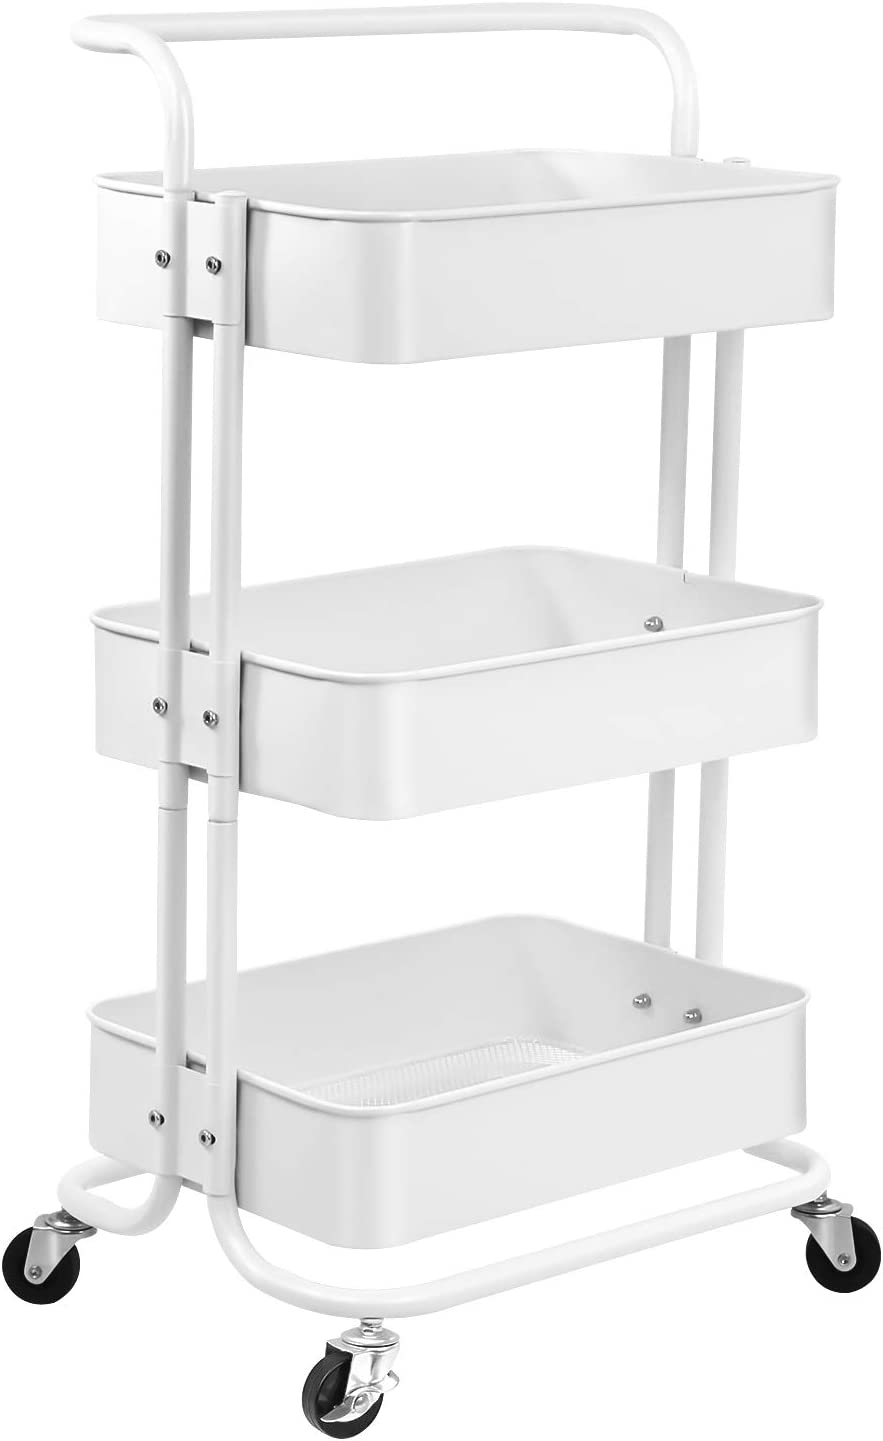 Metal Rolling Cart, 3-Tier Rolling Utility Cart with Handle Mobile Storage Organizer Cart Craft Cart with Lockable Wheels for Kitchen, Bathroom, Office, Coffee Bar, Easy Assembly